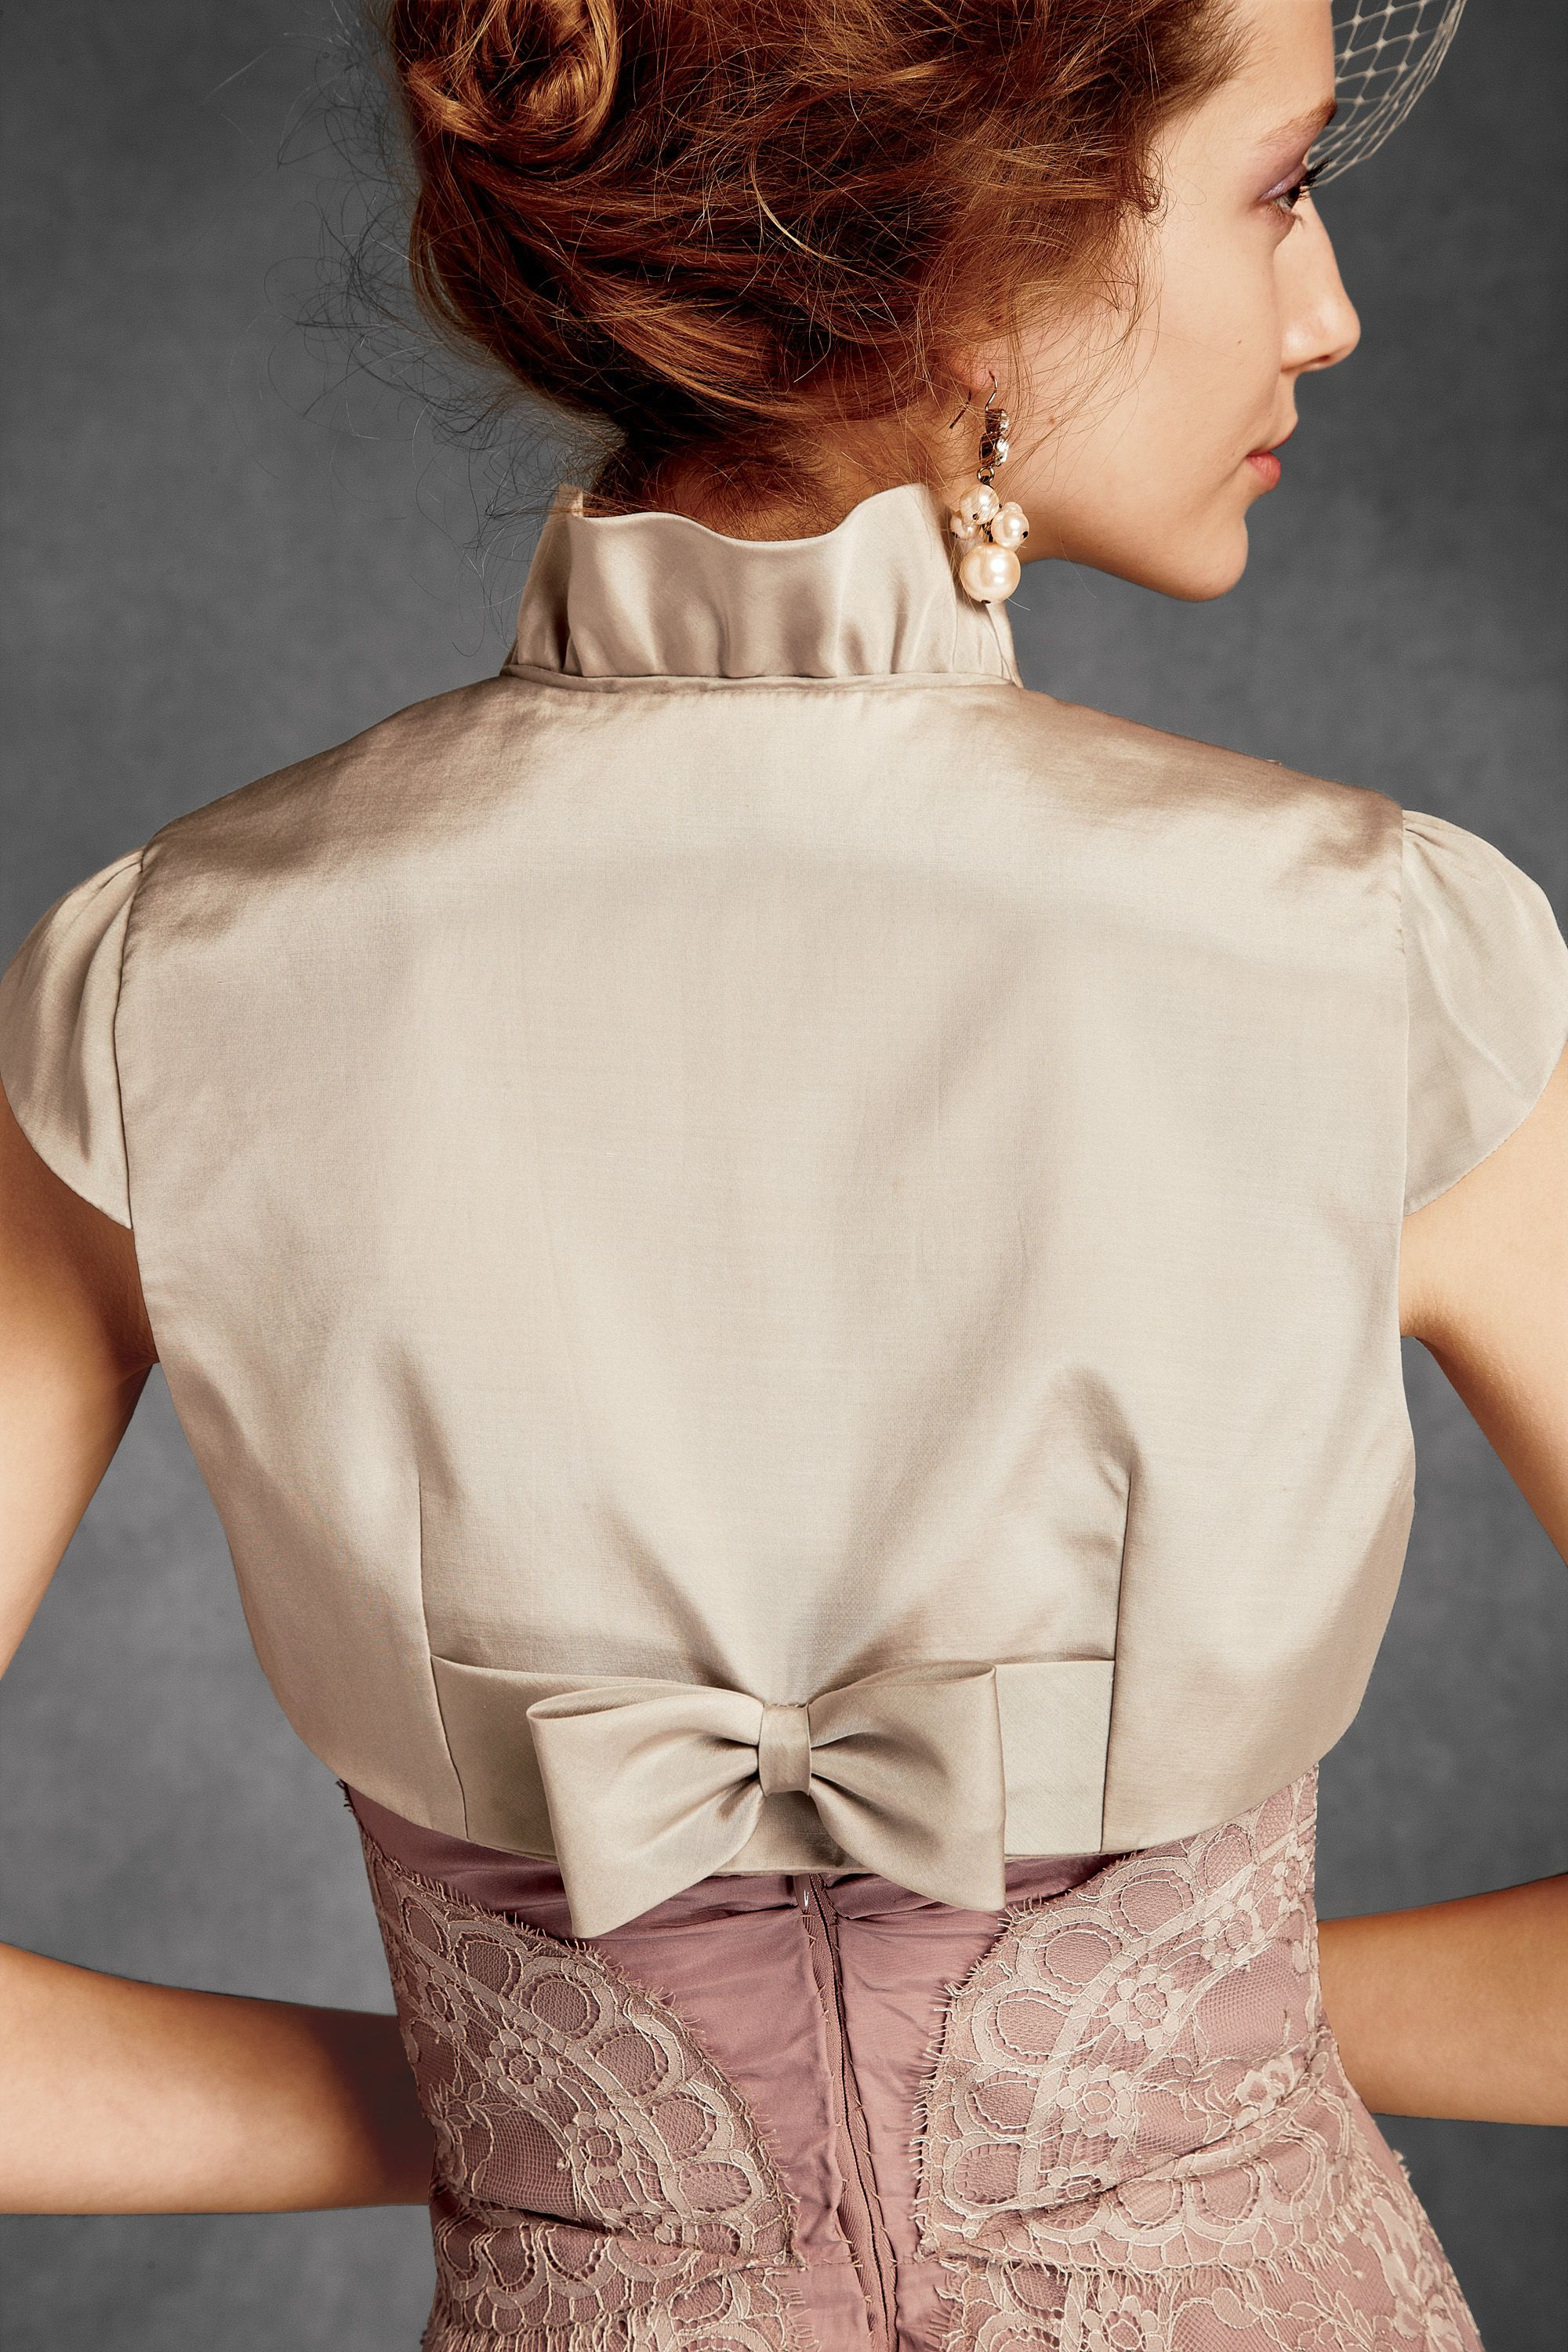 Back view of Bow-topped bolero by BHLDN | COSTURA | Pinterest ...